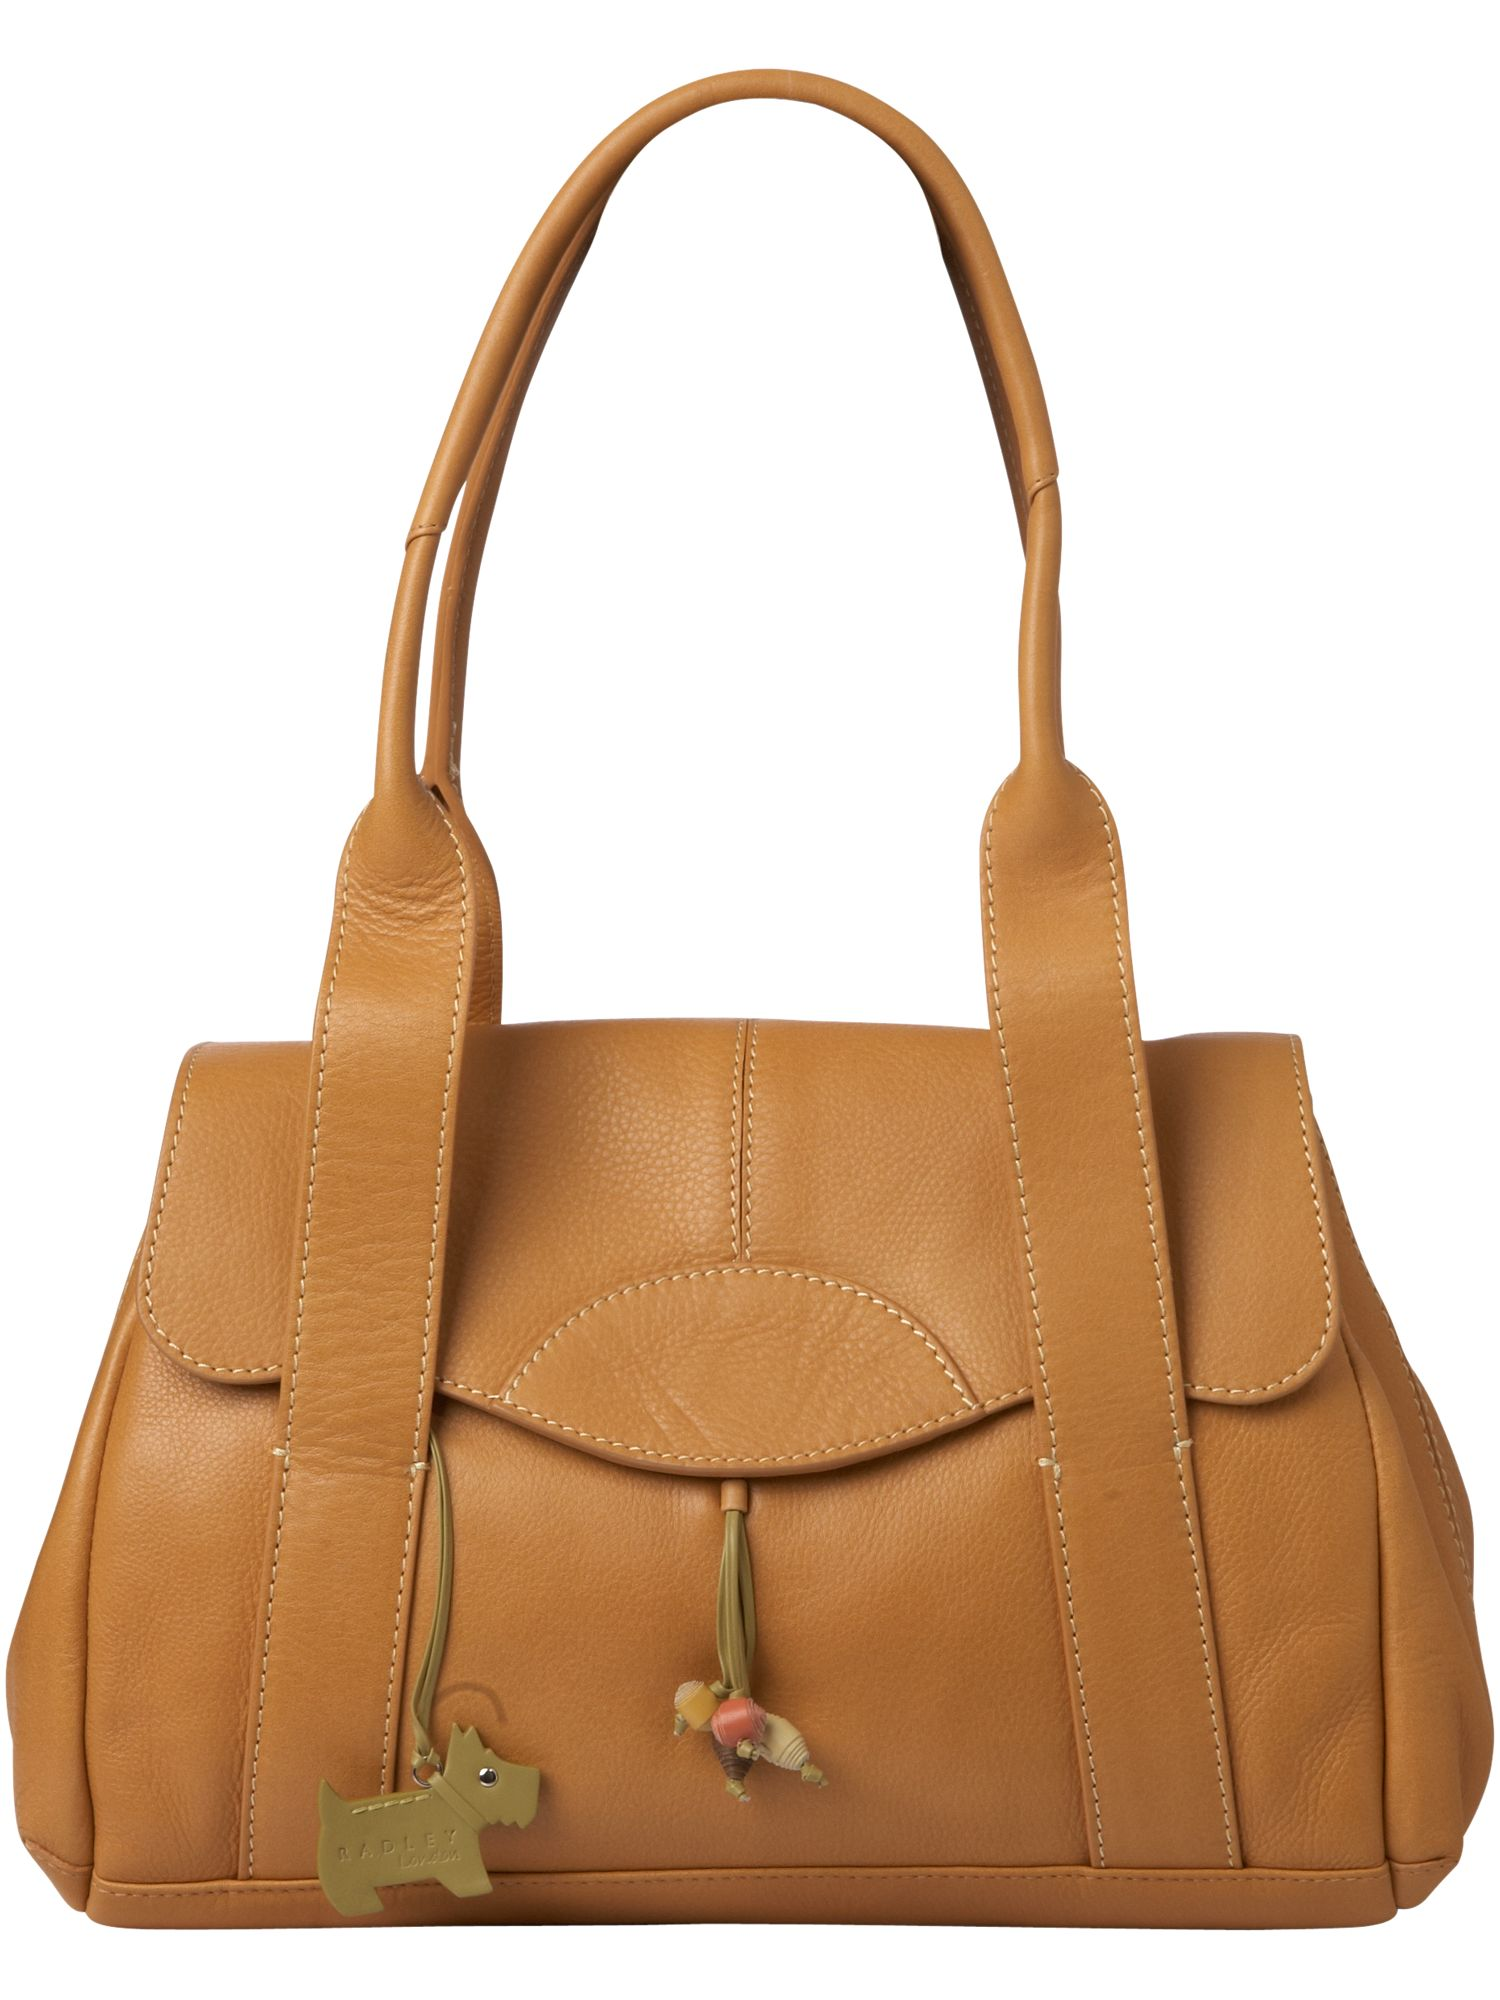 Radley Cheadle Flapover Shoulder Tote Bag product image